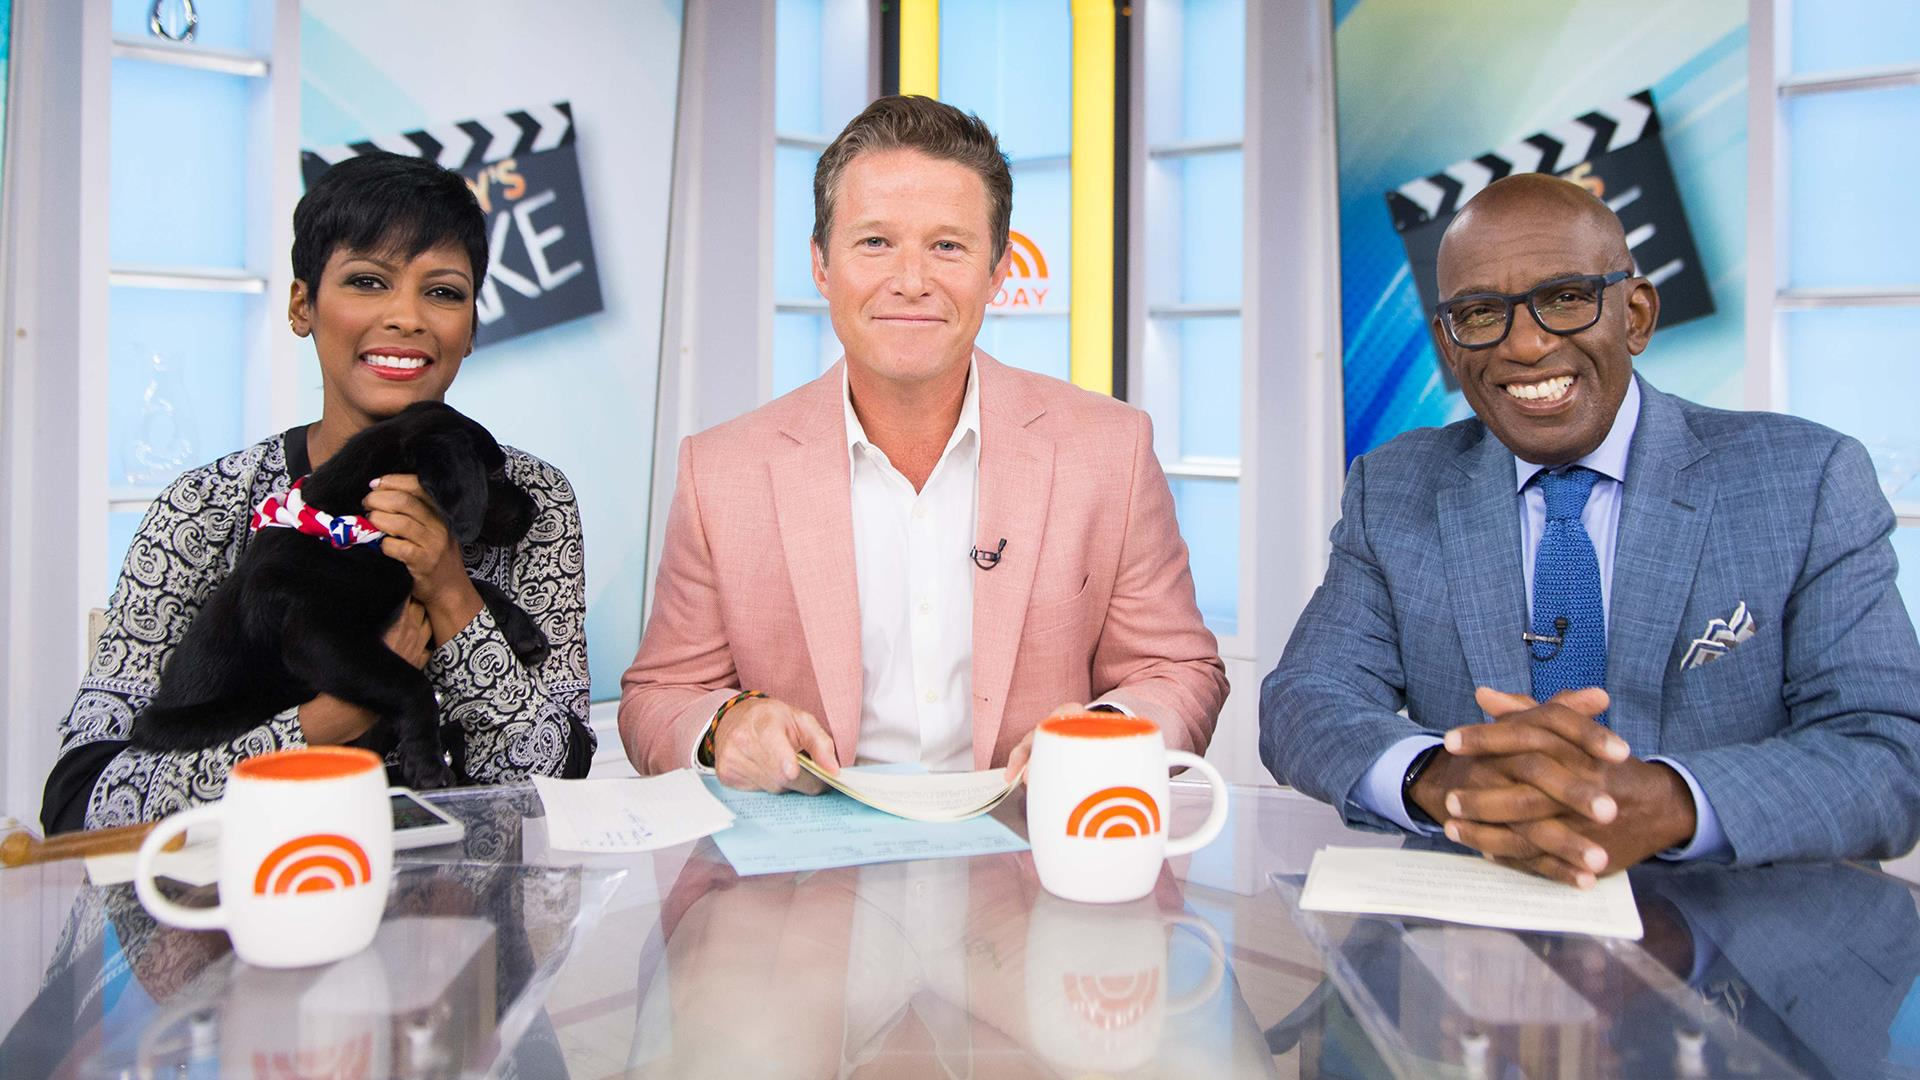 "In this Sept. 26, 2016 photo released by NBC, co-host Billy Bush appears on the ""Today"" show in New York. Bush says he's ""embarrassed and ashamed"" by a 2005 conversation he had with Donald Trump in which Trump made lewd comments about women. Bush, then a host of the entertainment news show ""Access Hollywood,"" was chatting with Trump as the businessman waited to make a cameo appearance on a soap opera. In a statement Friday, Oct. 7, Bush says he was younger and less mature when the incident occurred, adding that he ""acted foolishly in playing along."" (Peter Kramer/NBC via AP)  http://people.com/politics/billy-bush-today-not-fired-donald-trump/"